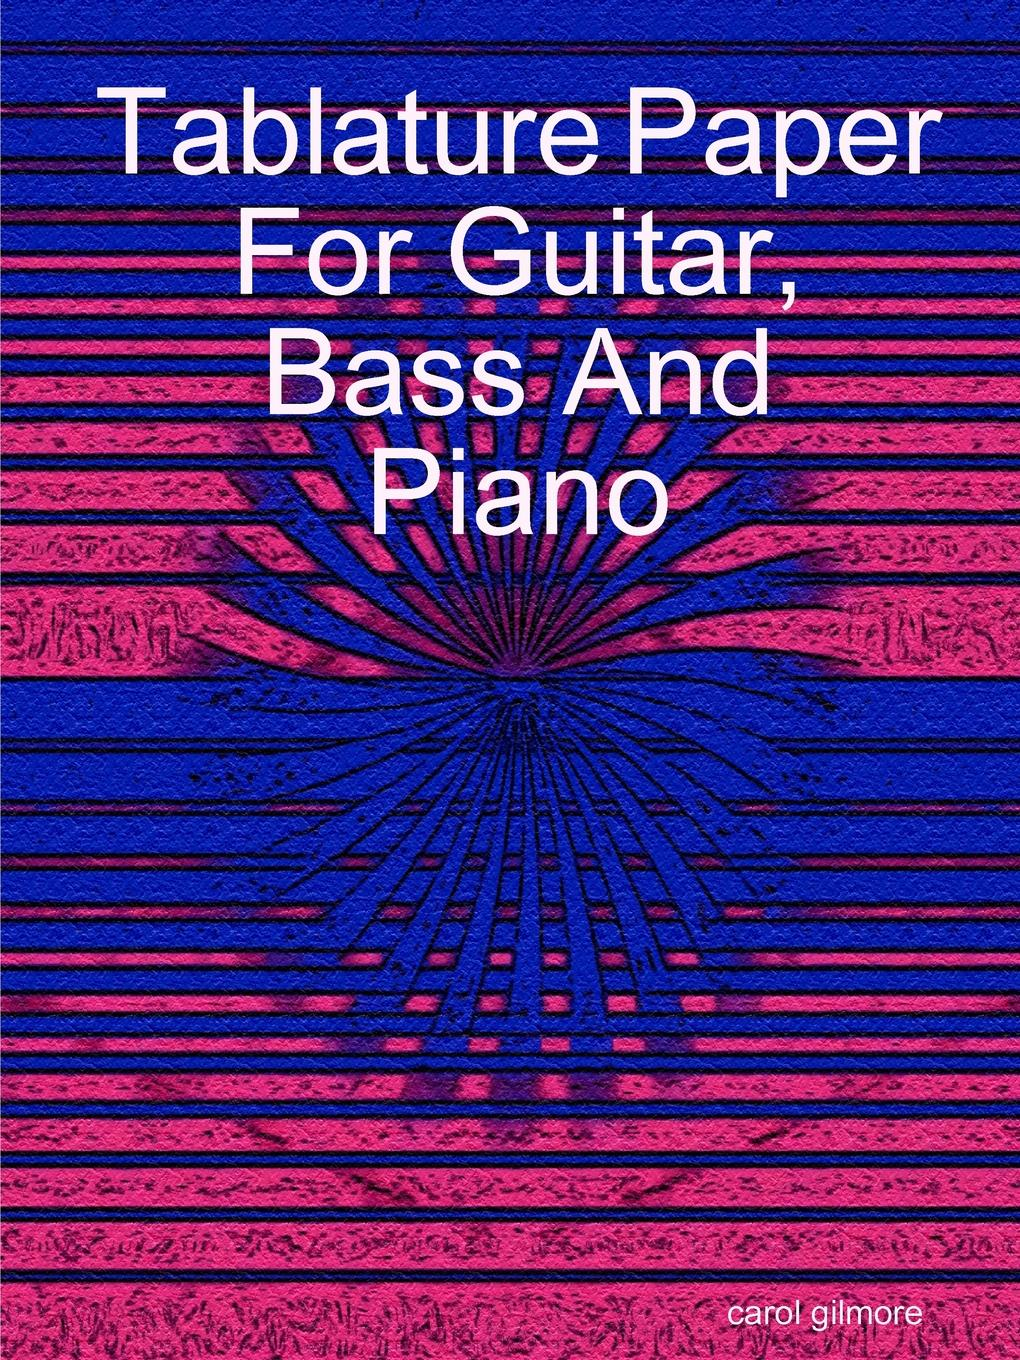 carol gilmore Tablature Paper For Guitar Bass And Piano blank